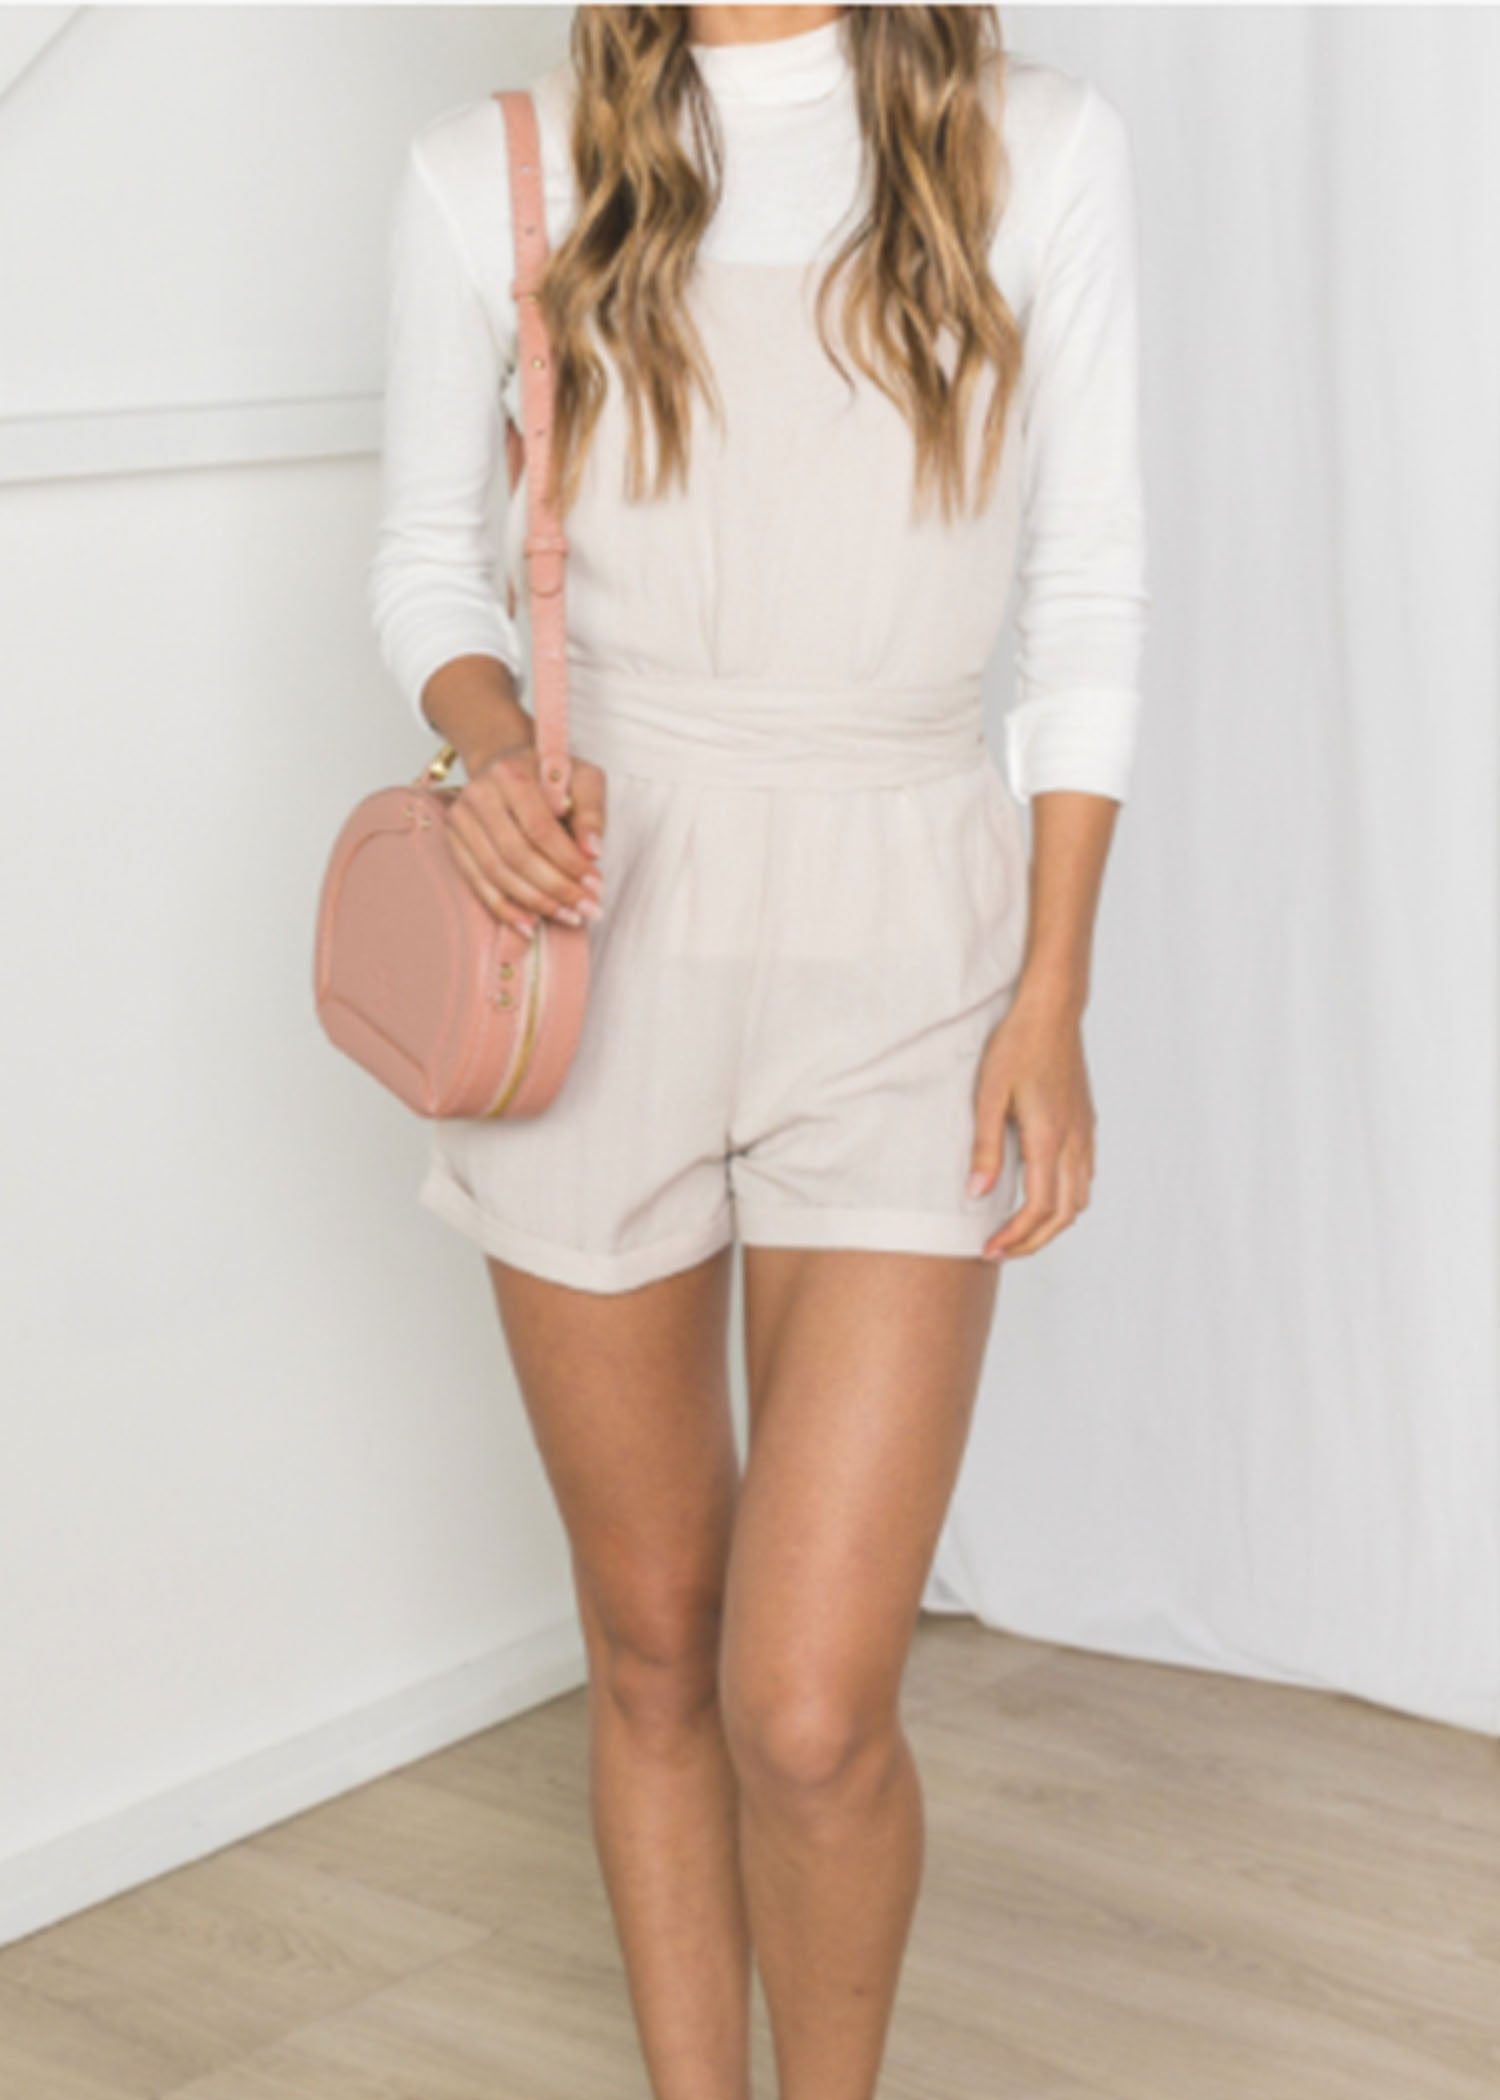 Kindly Deeds Playsuit - HALONA, USA